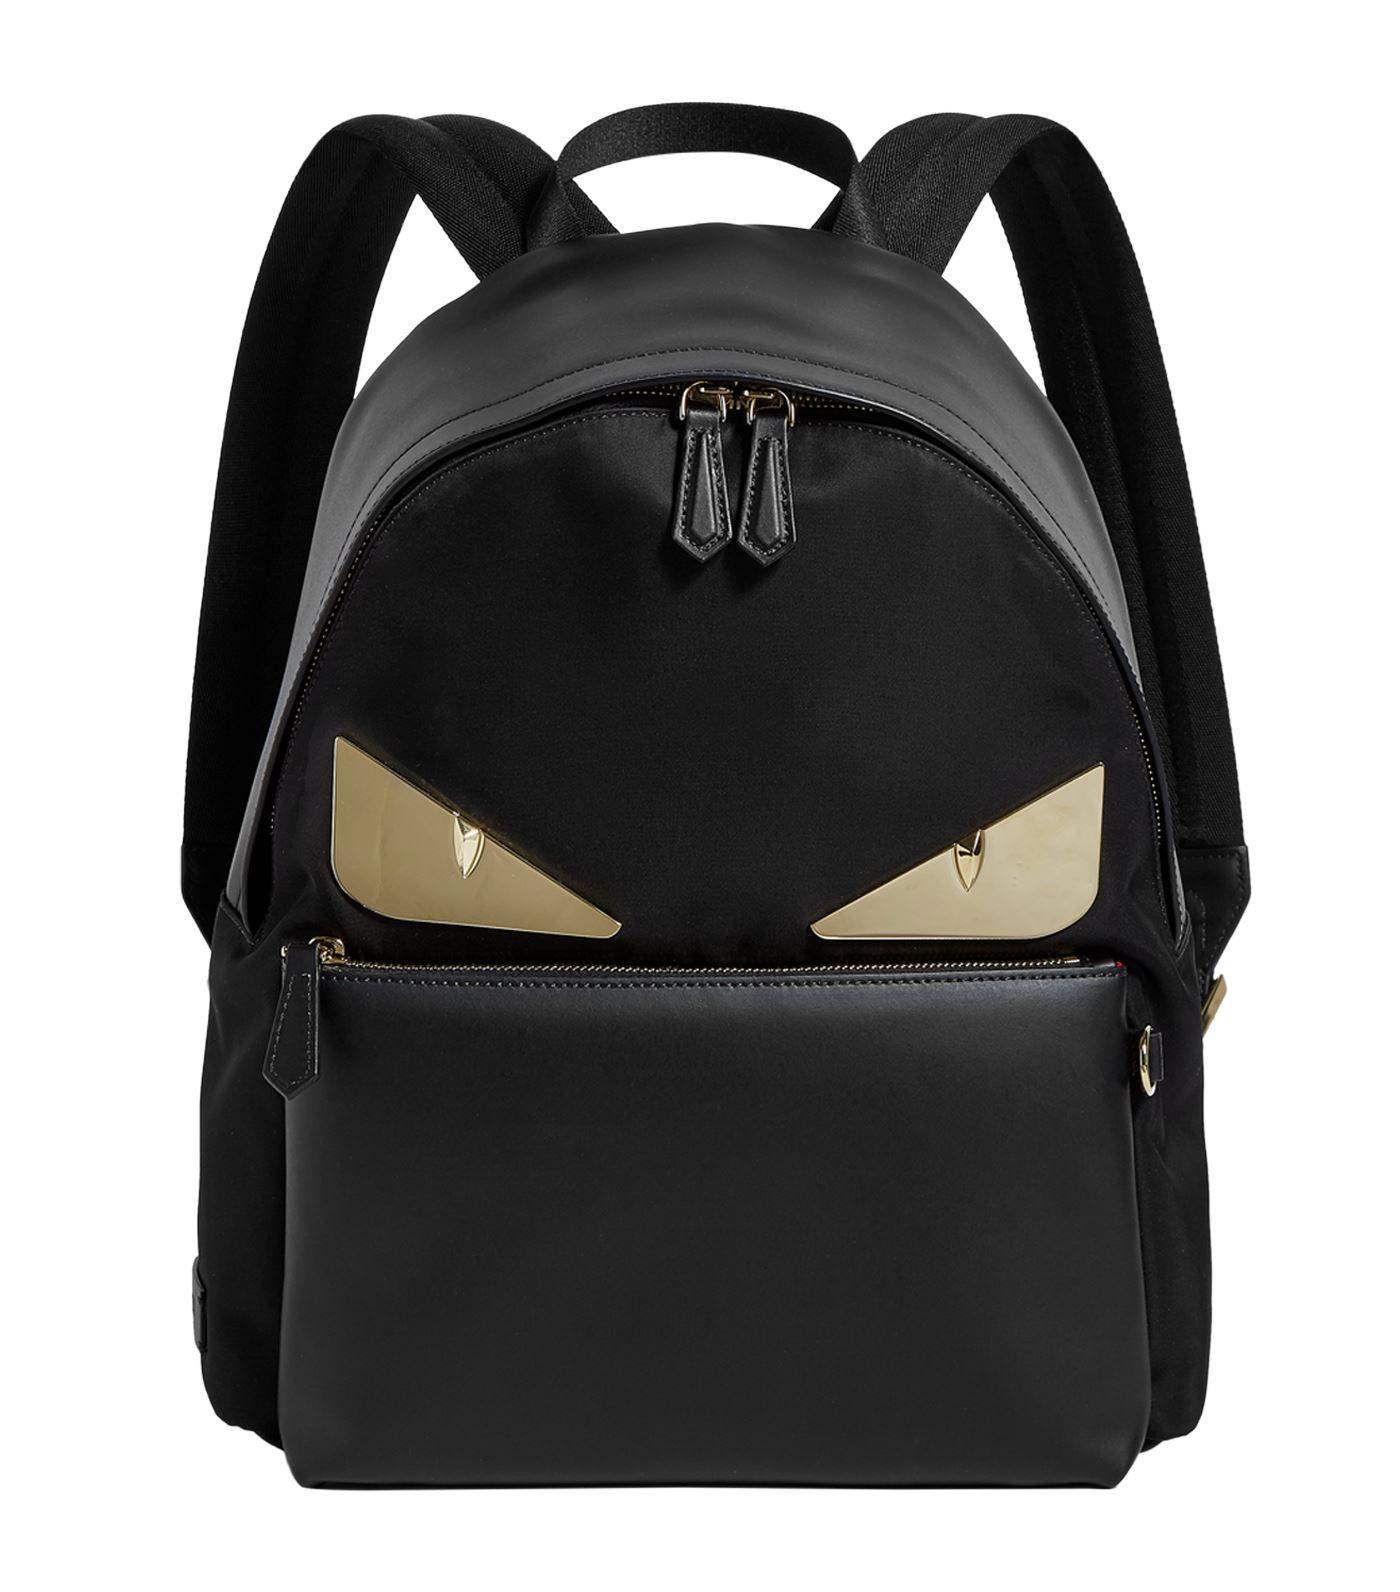 be7cf6977e27 Lyst - Fendi Bag Bugs Leather Backpack in Black for Men